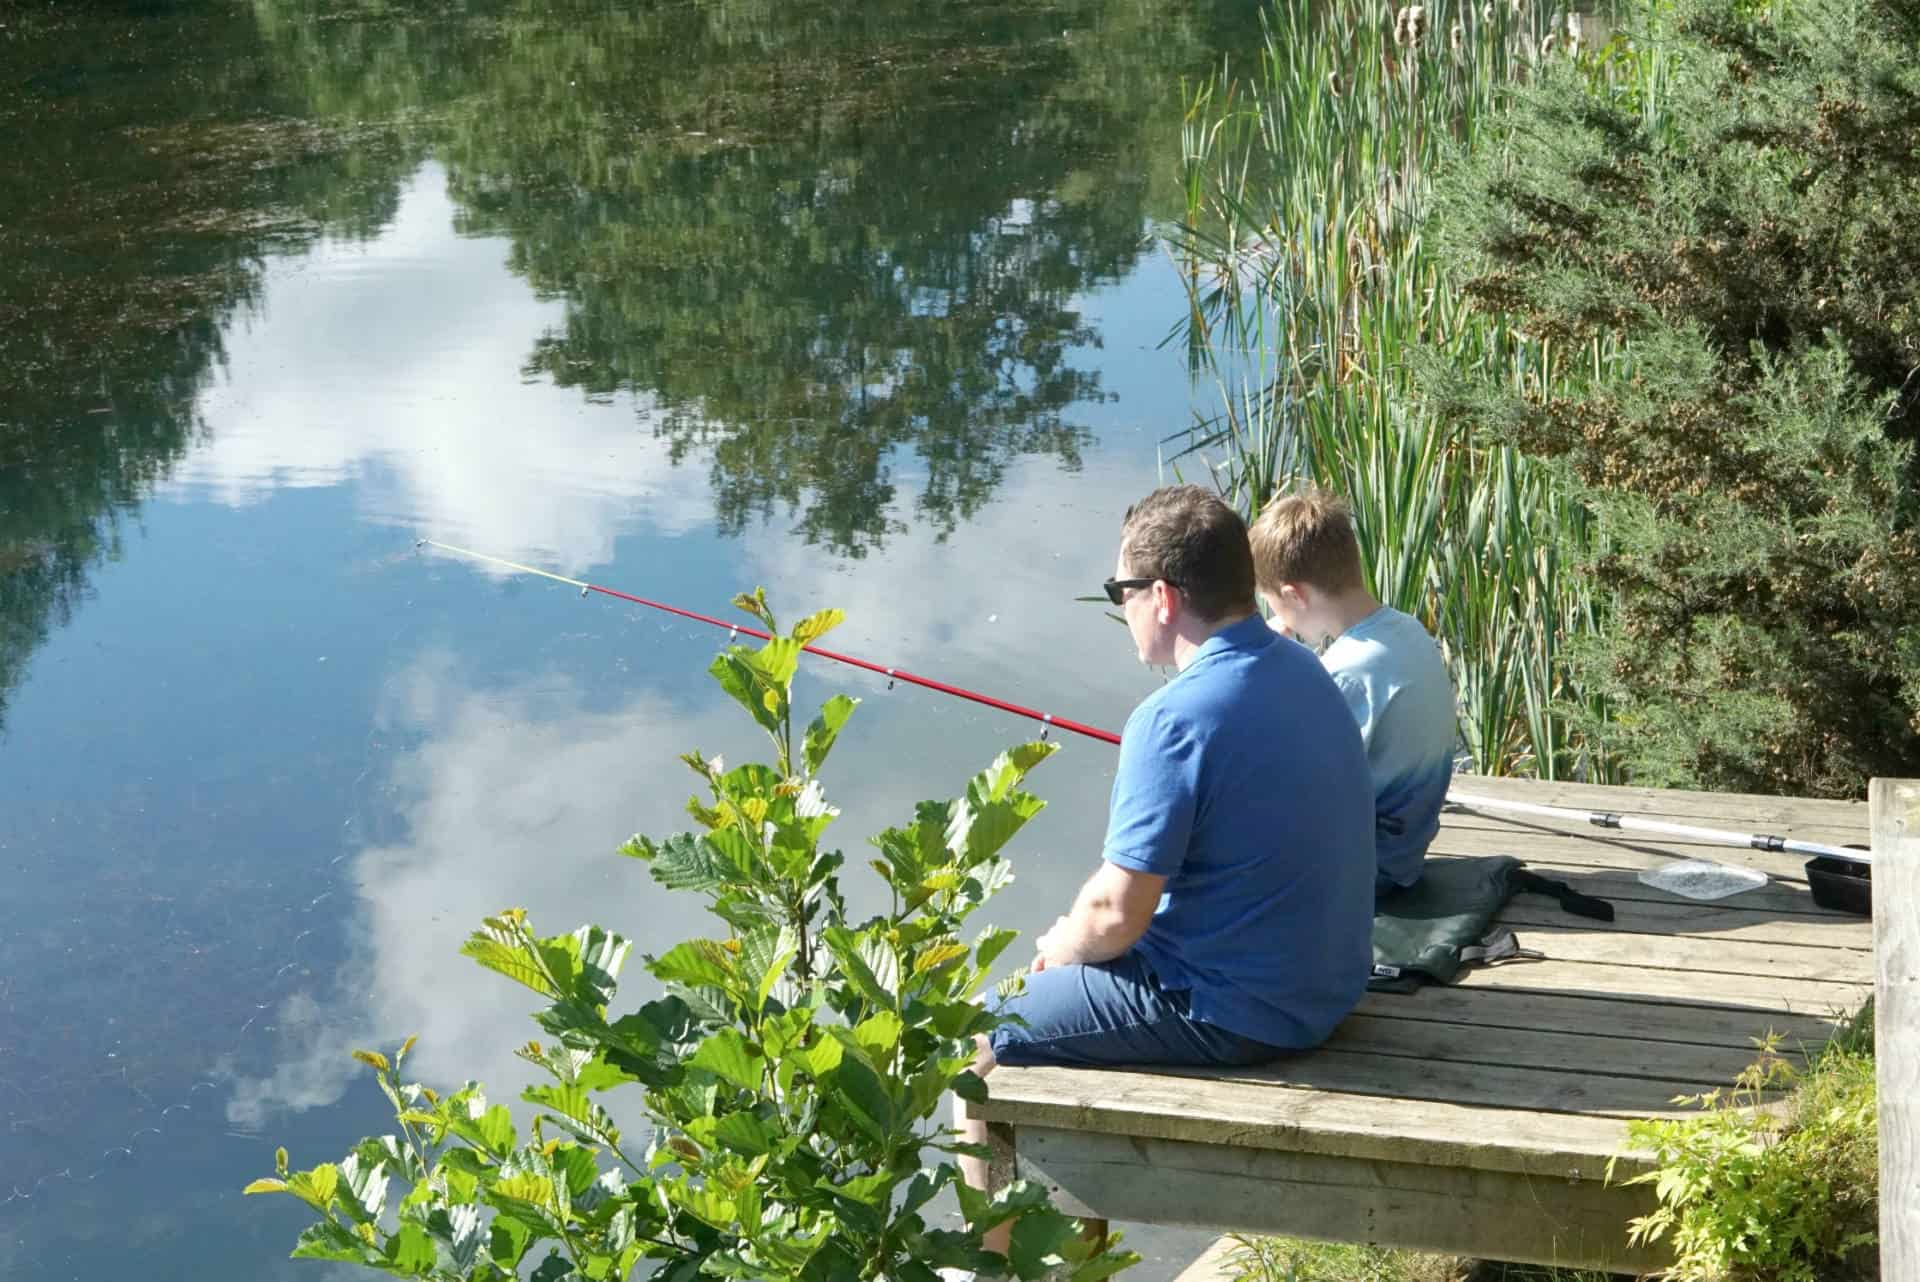 My sunday photo, fishing at brompton lakes f